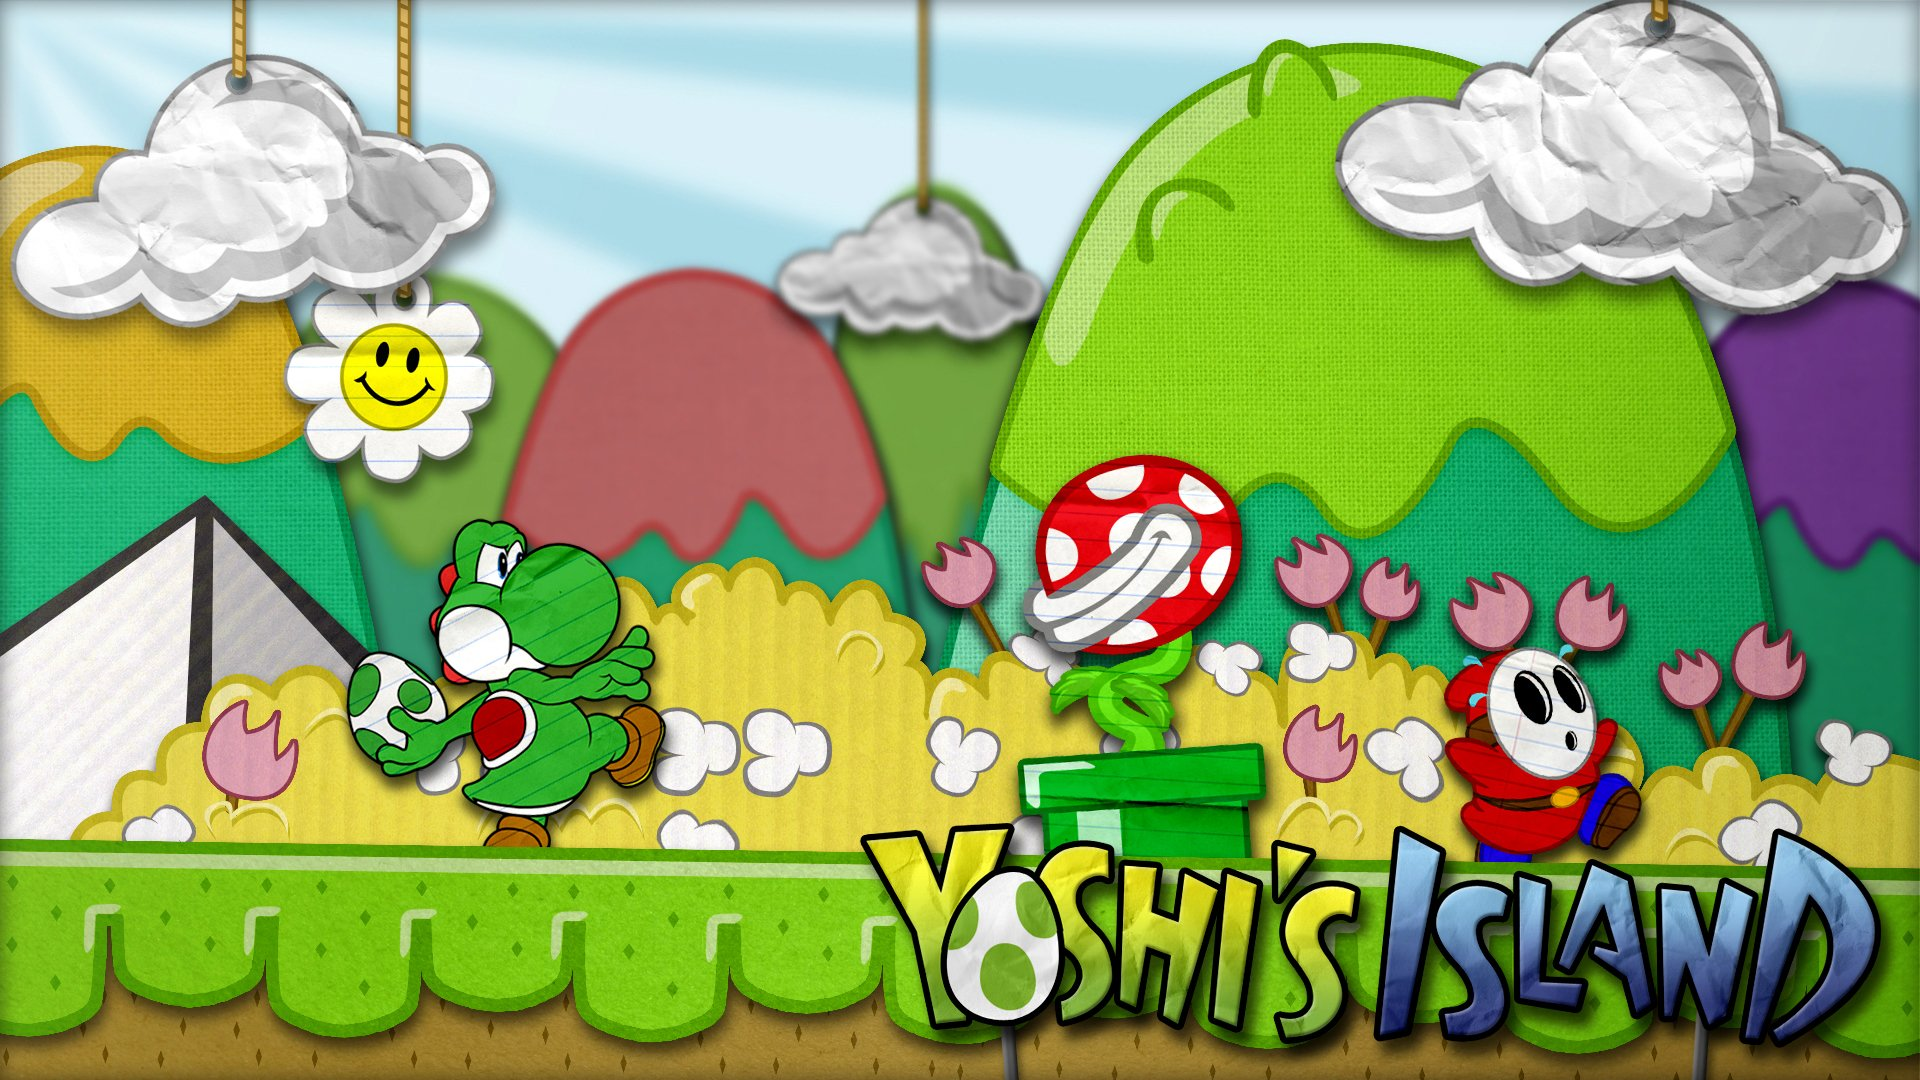 Shy Guy Iphone Wallpaper Super Mario World 2 Yoshi S Island Full Hd Wallpaper And